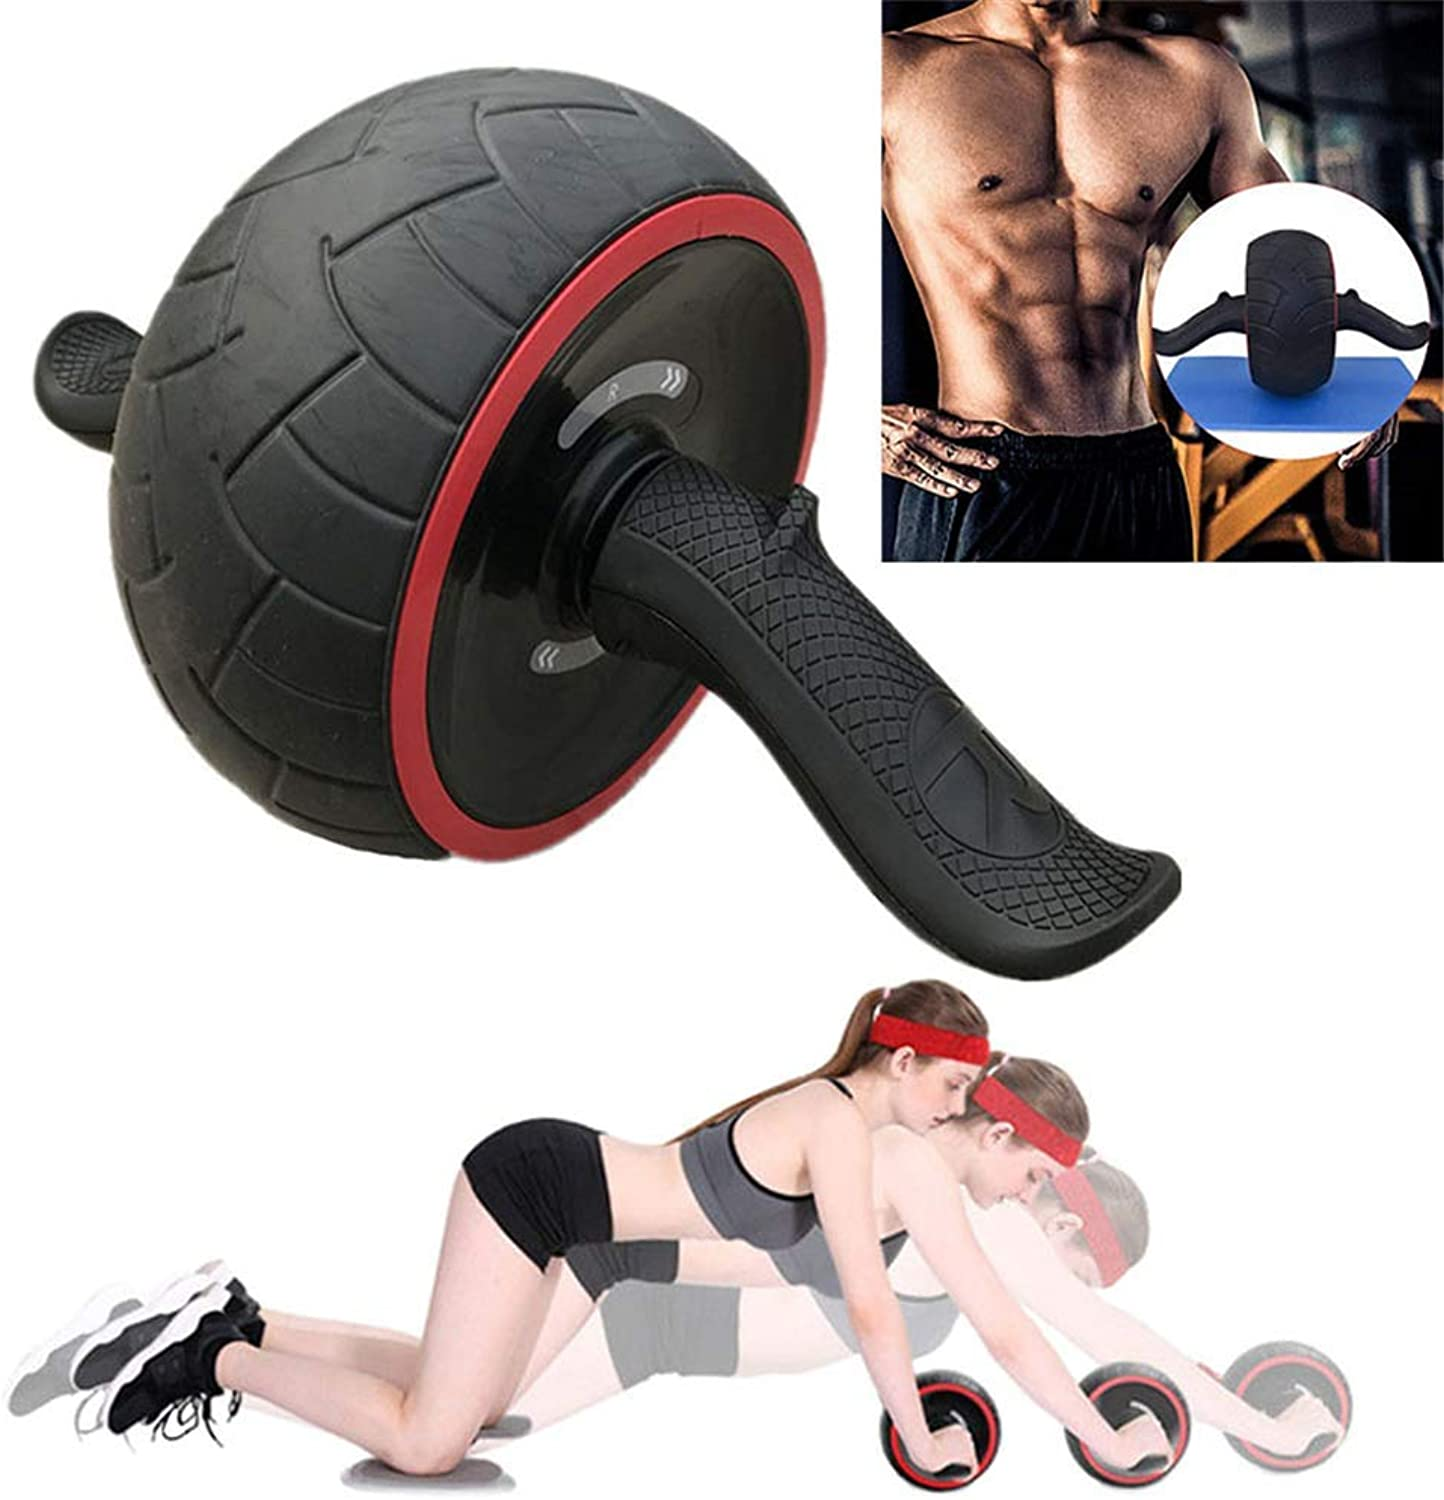 Ab Roller Wheel Trainer Pro Core Abdominal Exercise Training Fitness Equipment with Easy Grips Handles for Man Woman Gymnastics Home Gym